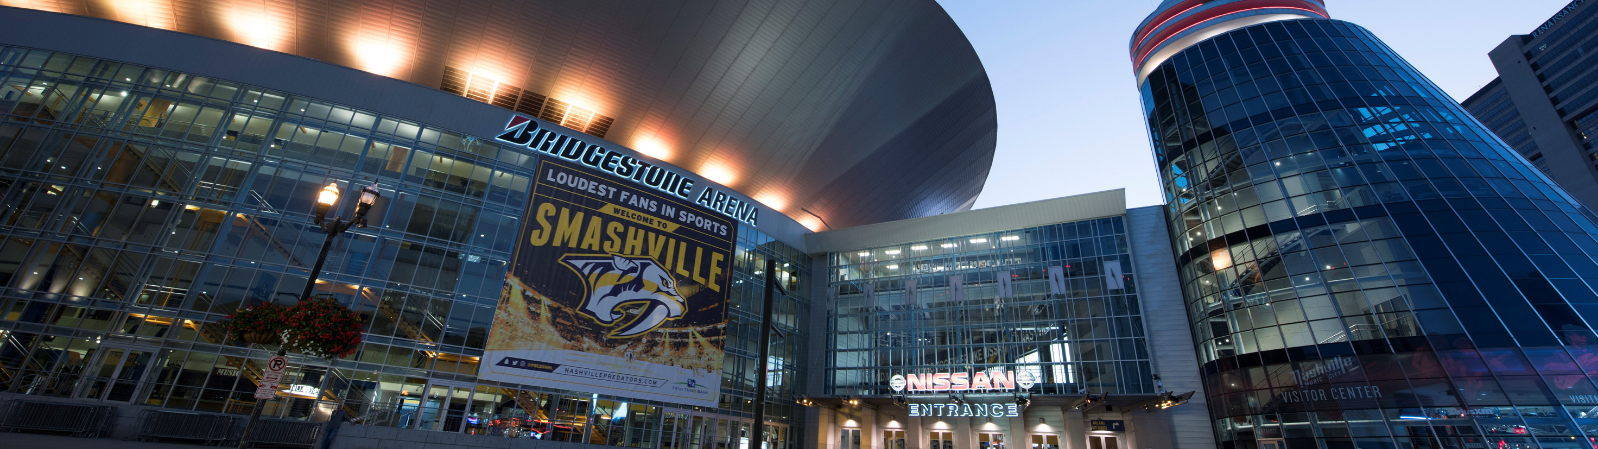 Bridgestone Arena, in Nashville TN